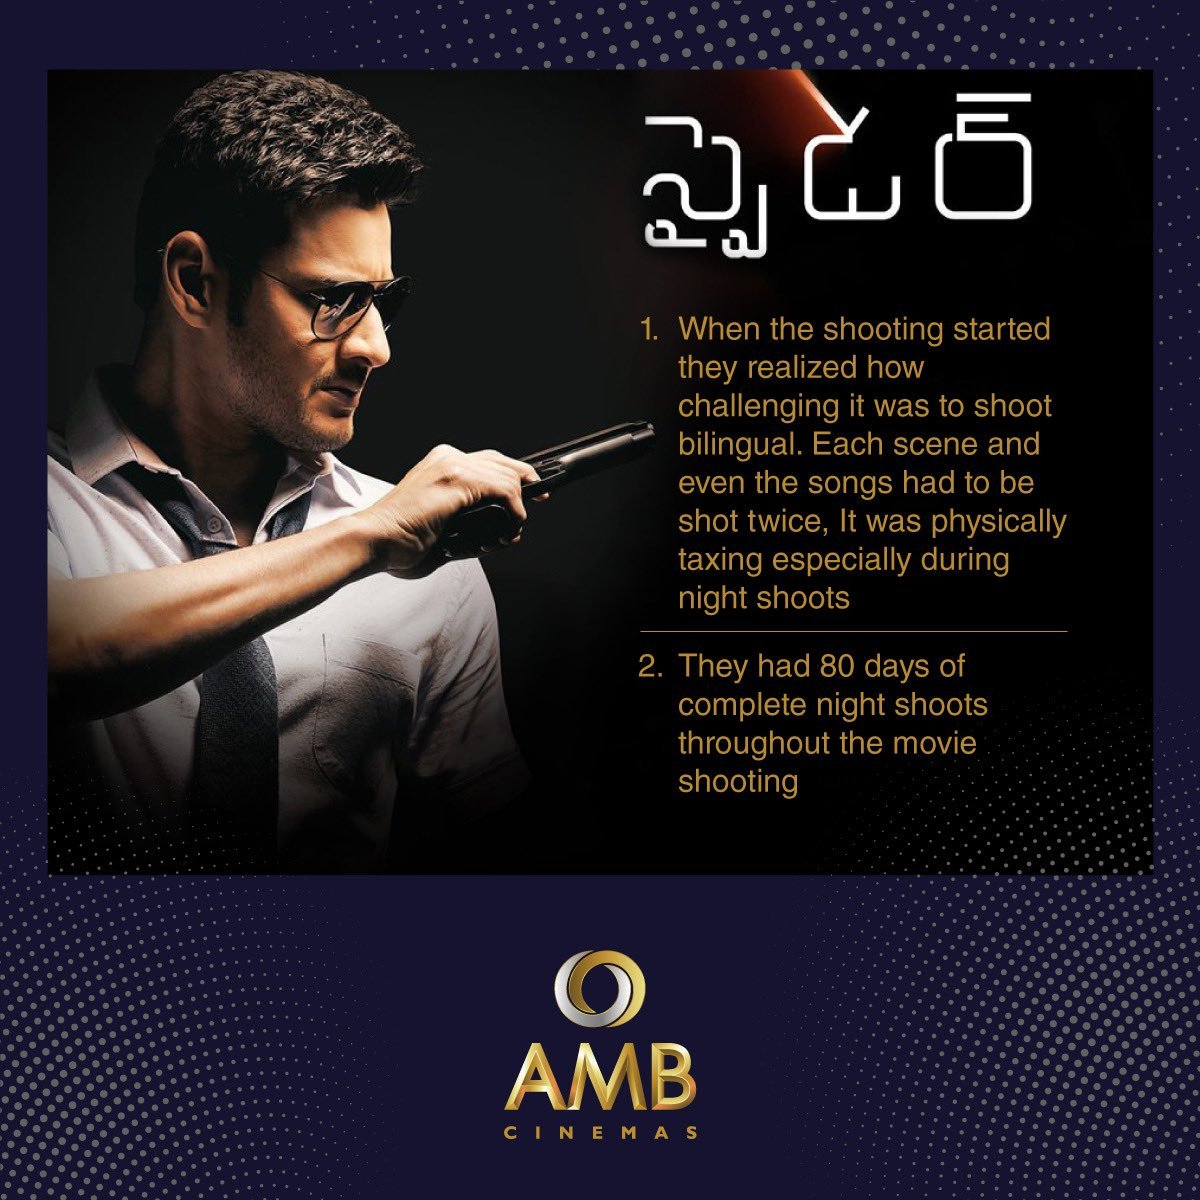 Did you know these facts on Spyder?😮 Comment below if you know another fact that's not mentioned here!😃 #Superstar #MaheshBabu #Spyder #MovieFacts #AMBCinemas